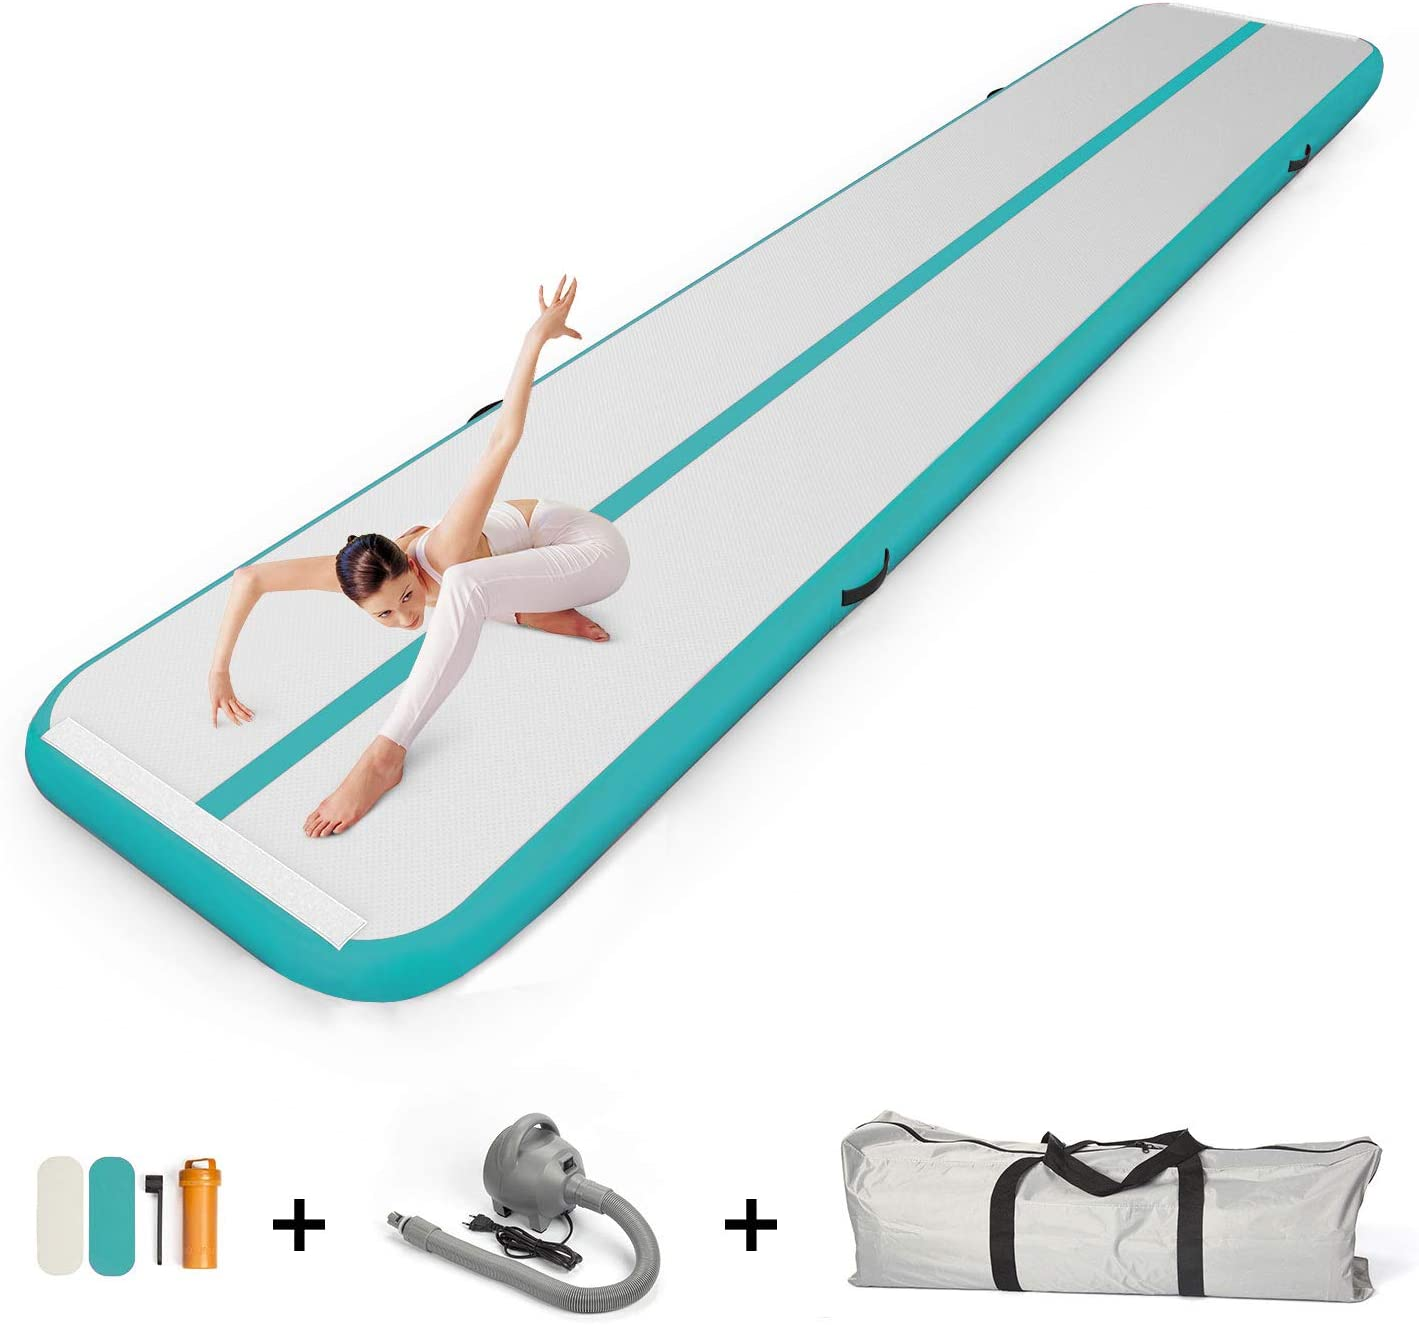 JC-ATHLETICS 16ft//20ft Inflatable Gymnastics Tumbling Air Track Mat with Air Pump for Cheerleading//Practice Gymnastics//Beach//Park//Home use